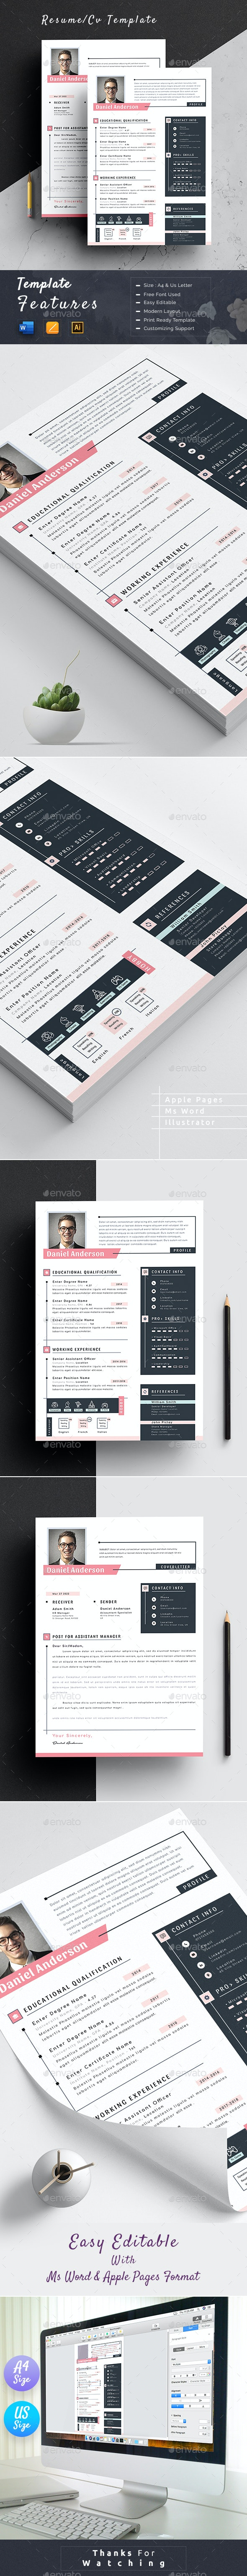 Resume Cv Template Word Apple Pages - Resumes Stationery